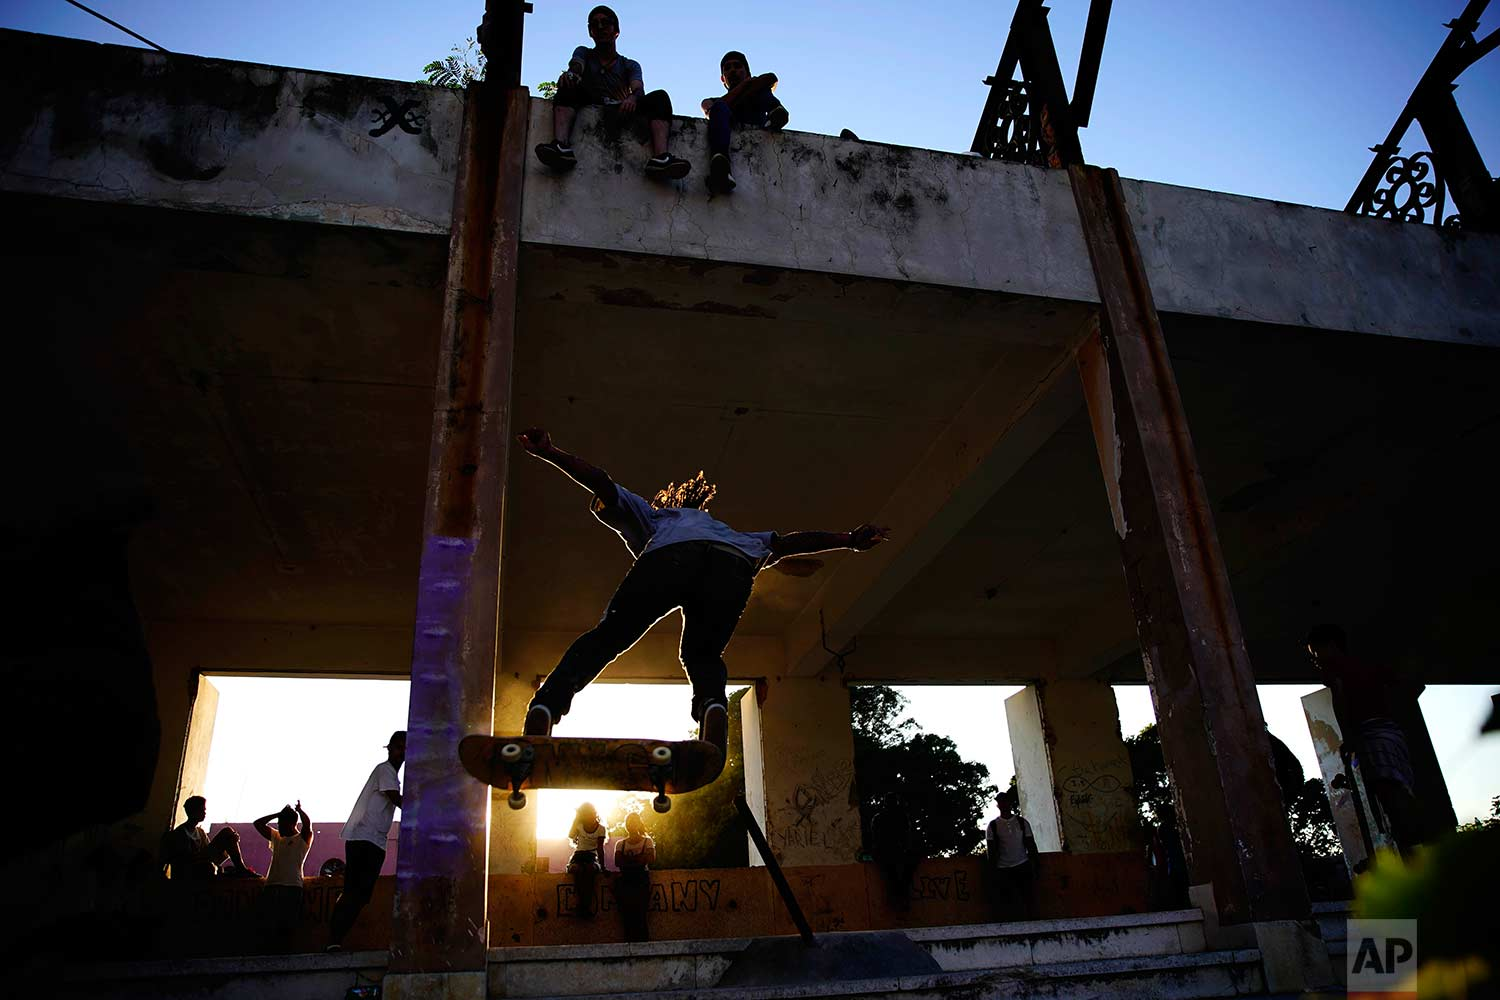 In this Jan. 11, 2018 photo, a skater jumps a ramp during the inauguration of a new recreational space for skateboarders, created in an abandoned gym at the Educational complex Ciudad Libertad, a former military barracks that the late Fidel Castro turned into a school complex after the revolution in Havana, Cuba. (AP Photo/Ramon Espinosa)